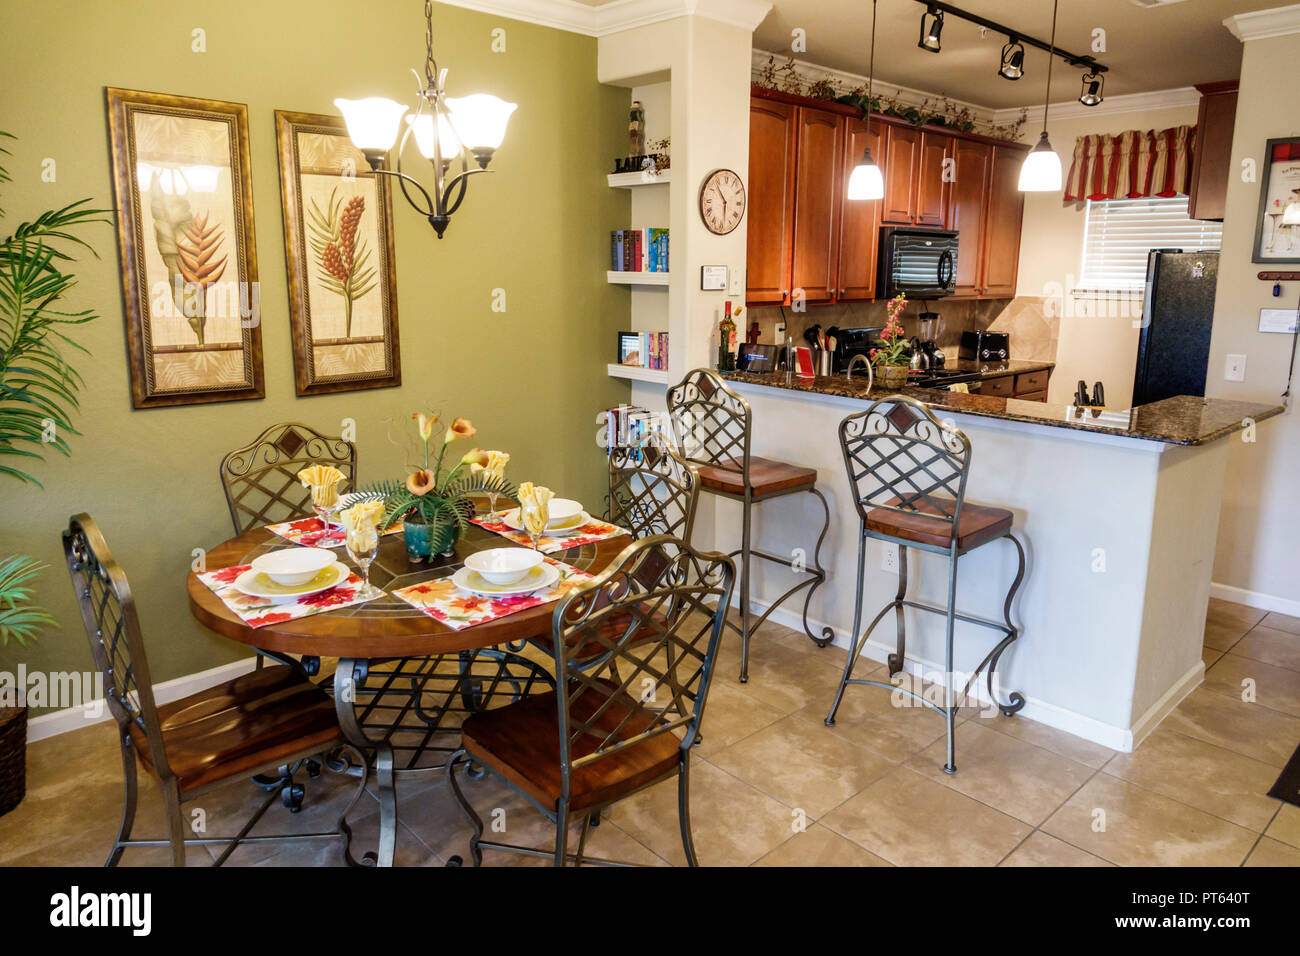 Davenport Florida Bella Piazza rental condominium apartment dining room kitchen inside - Stock Image